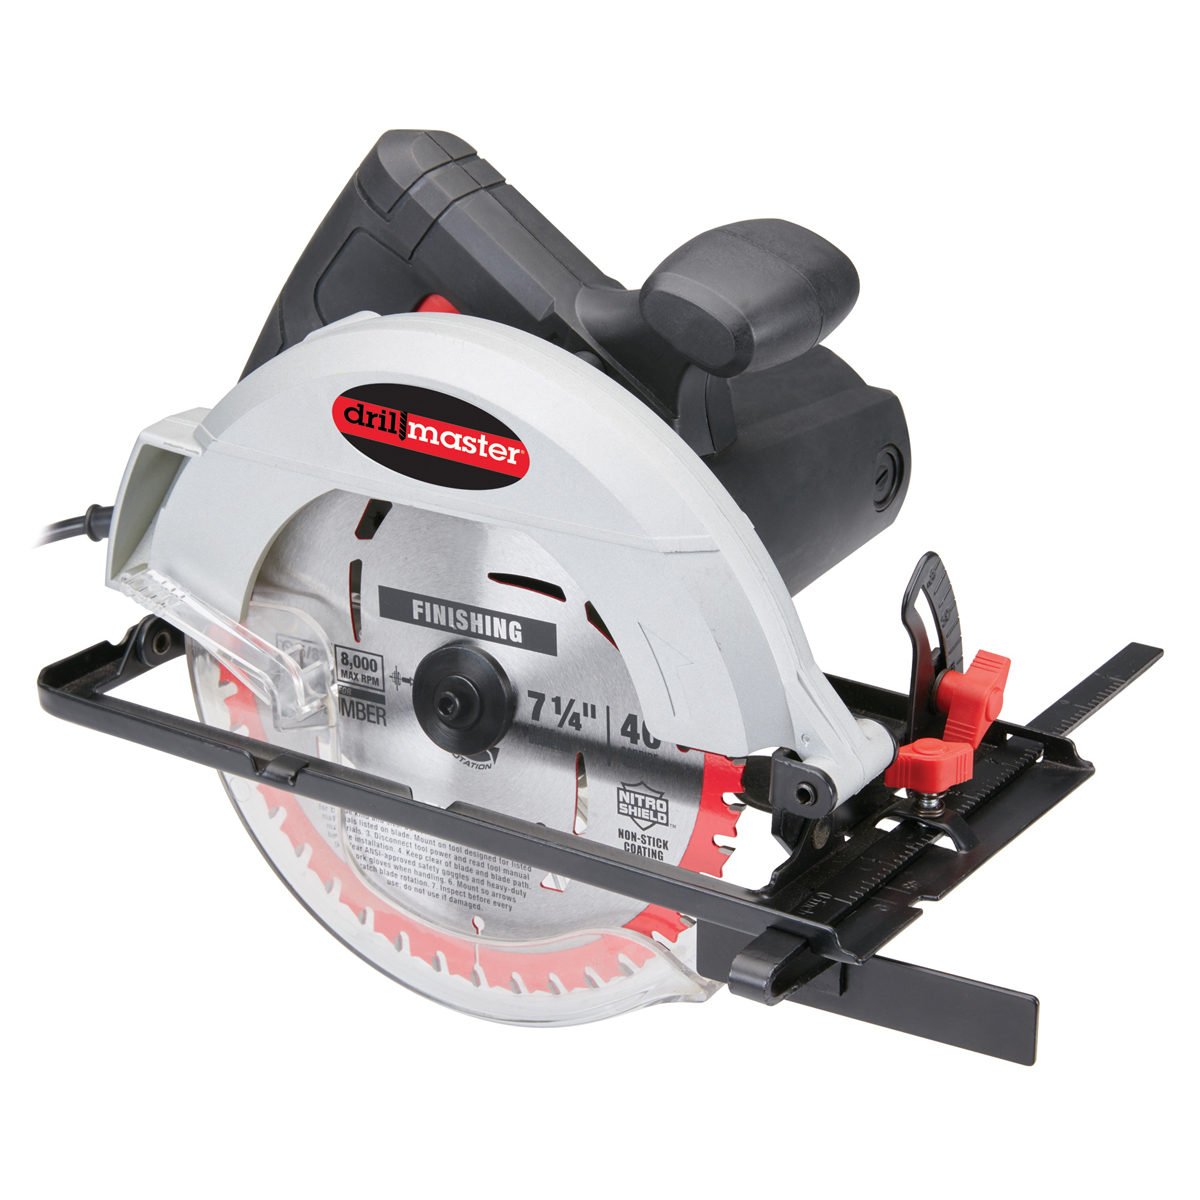 All On The Chainsaw - The Husqvarna 450 Chainsaw And Other Power Saws